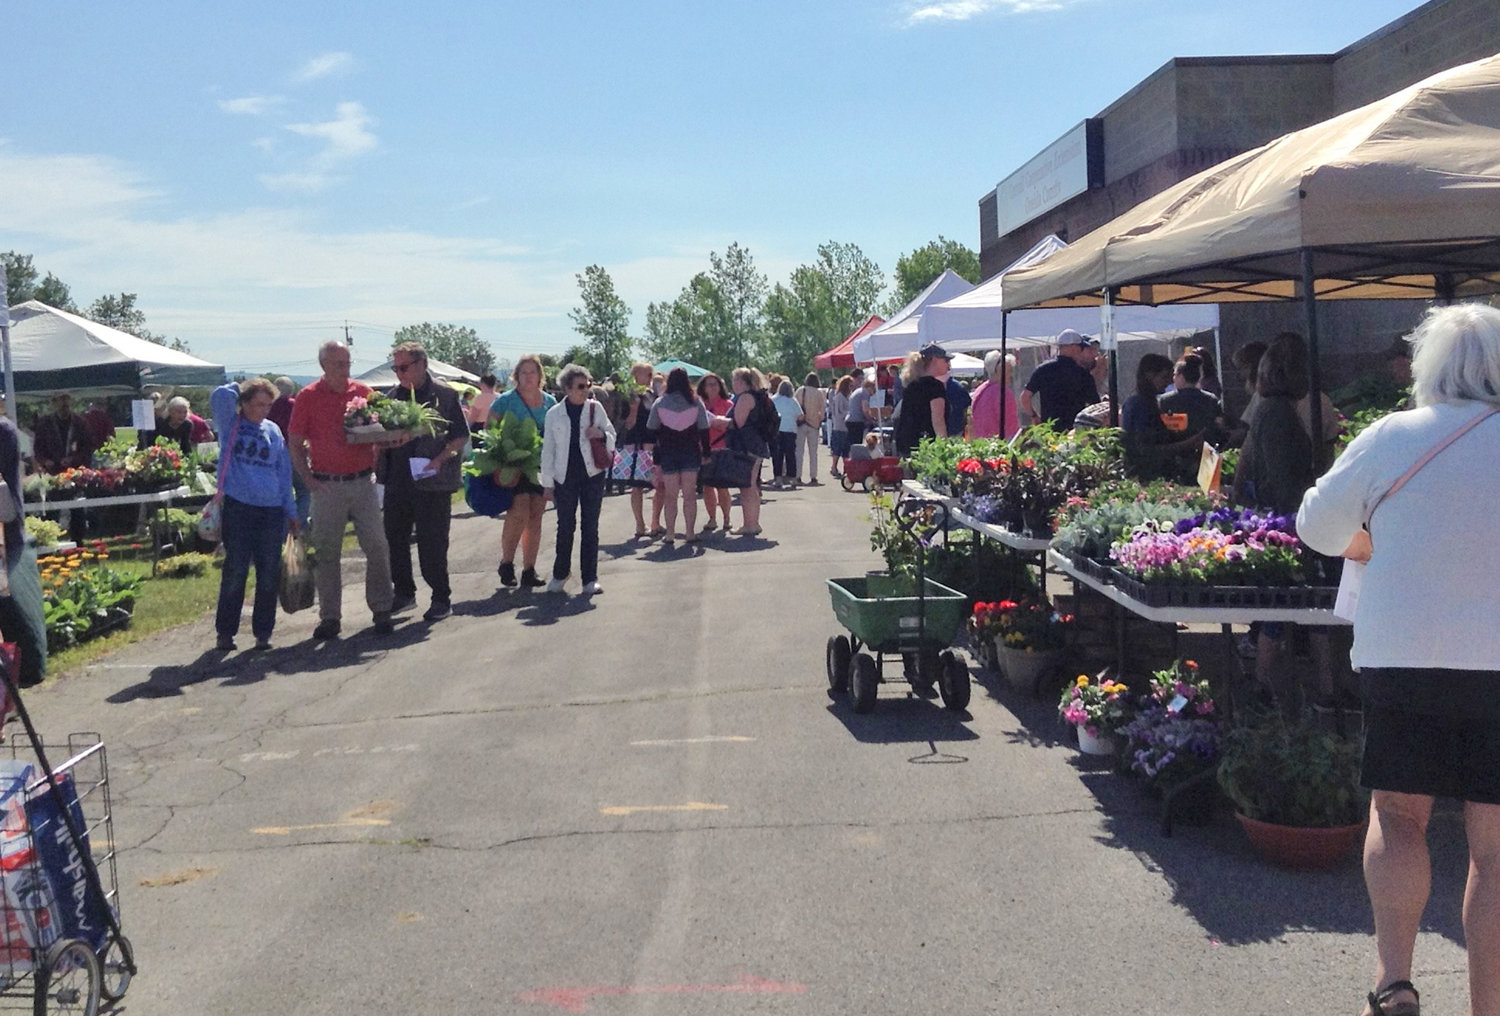 BEAUTIFUL DAY — Attendees enjoy the  23rd Herb & Flower Festival on Saturday, June 15.